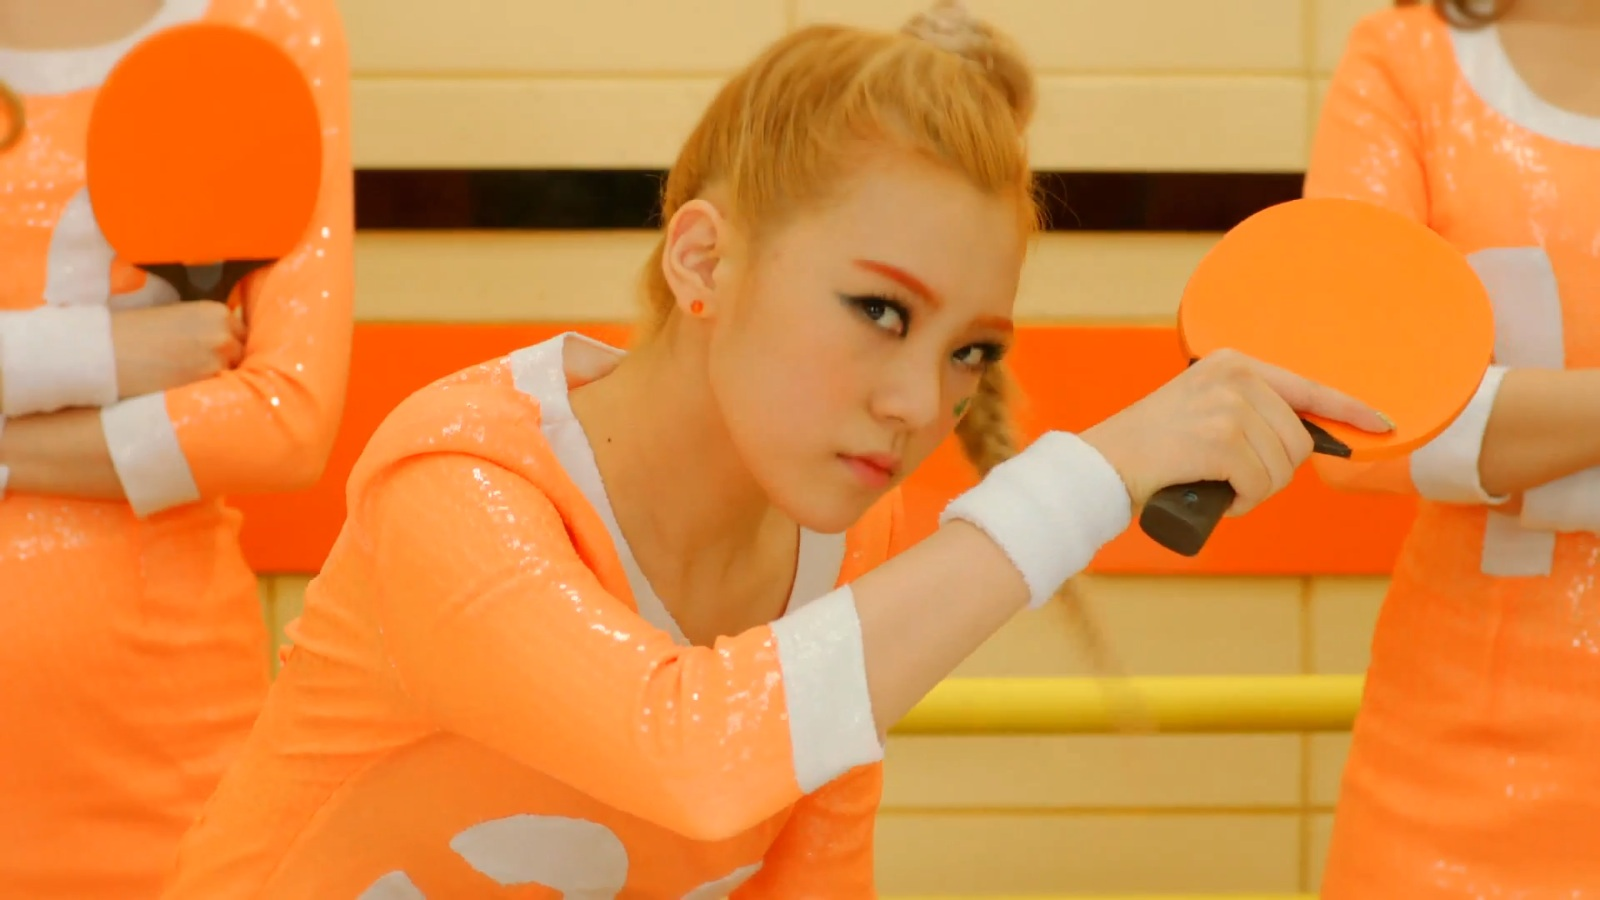 Orange Caramel's Lizzy Proves She Can Fit Inside A Cabinet